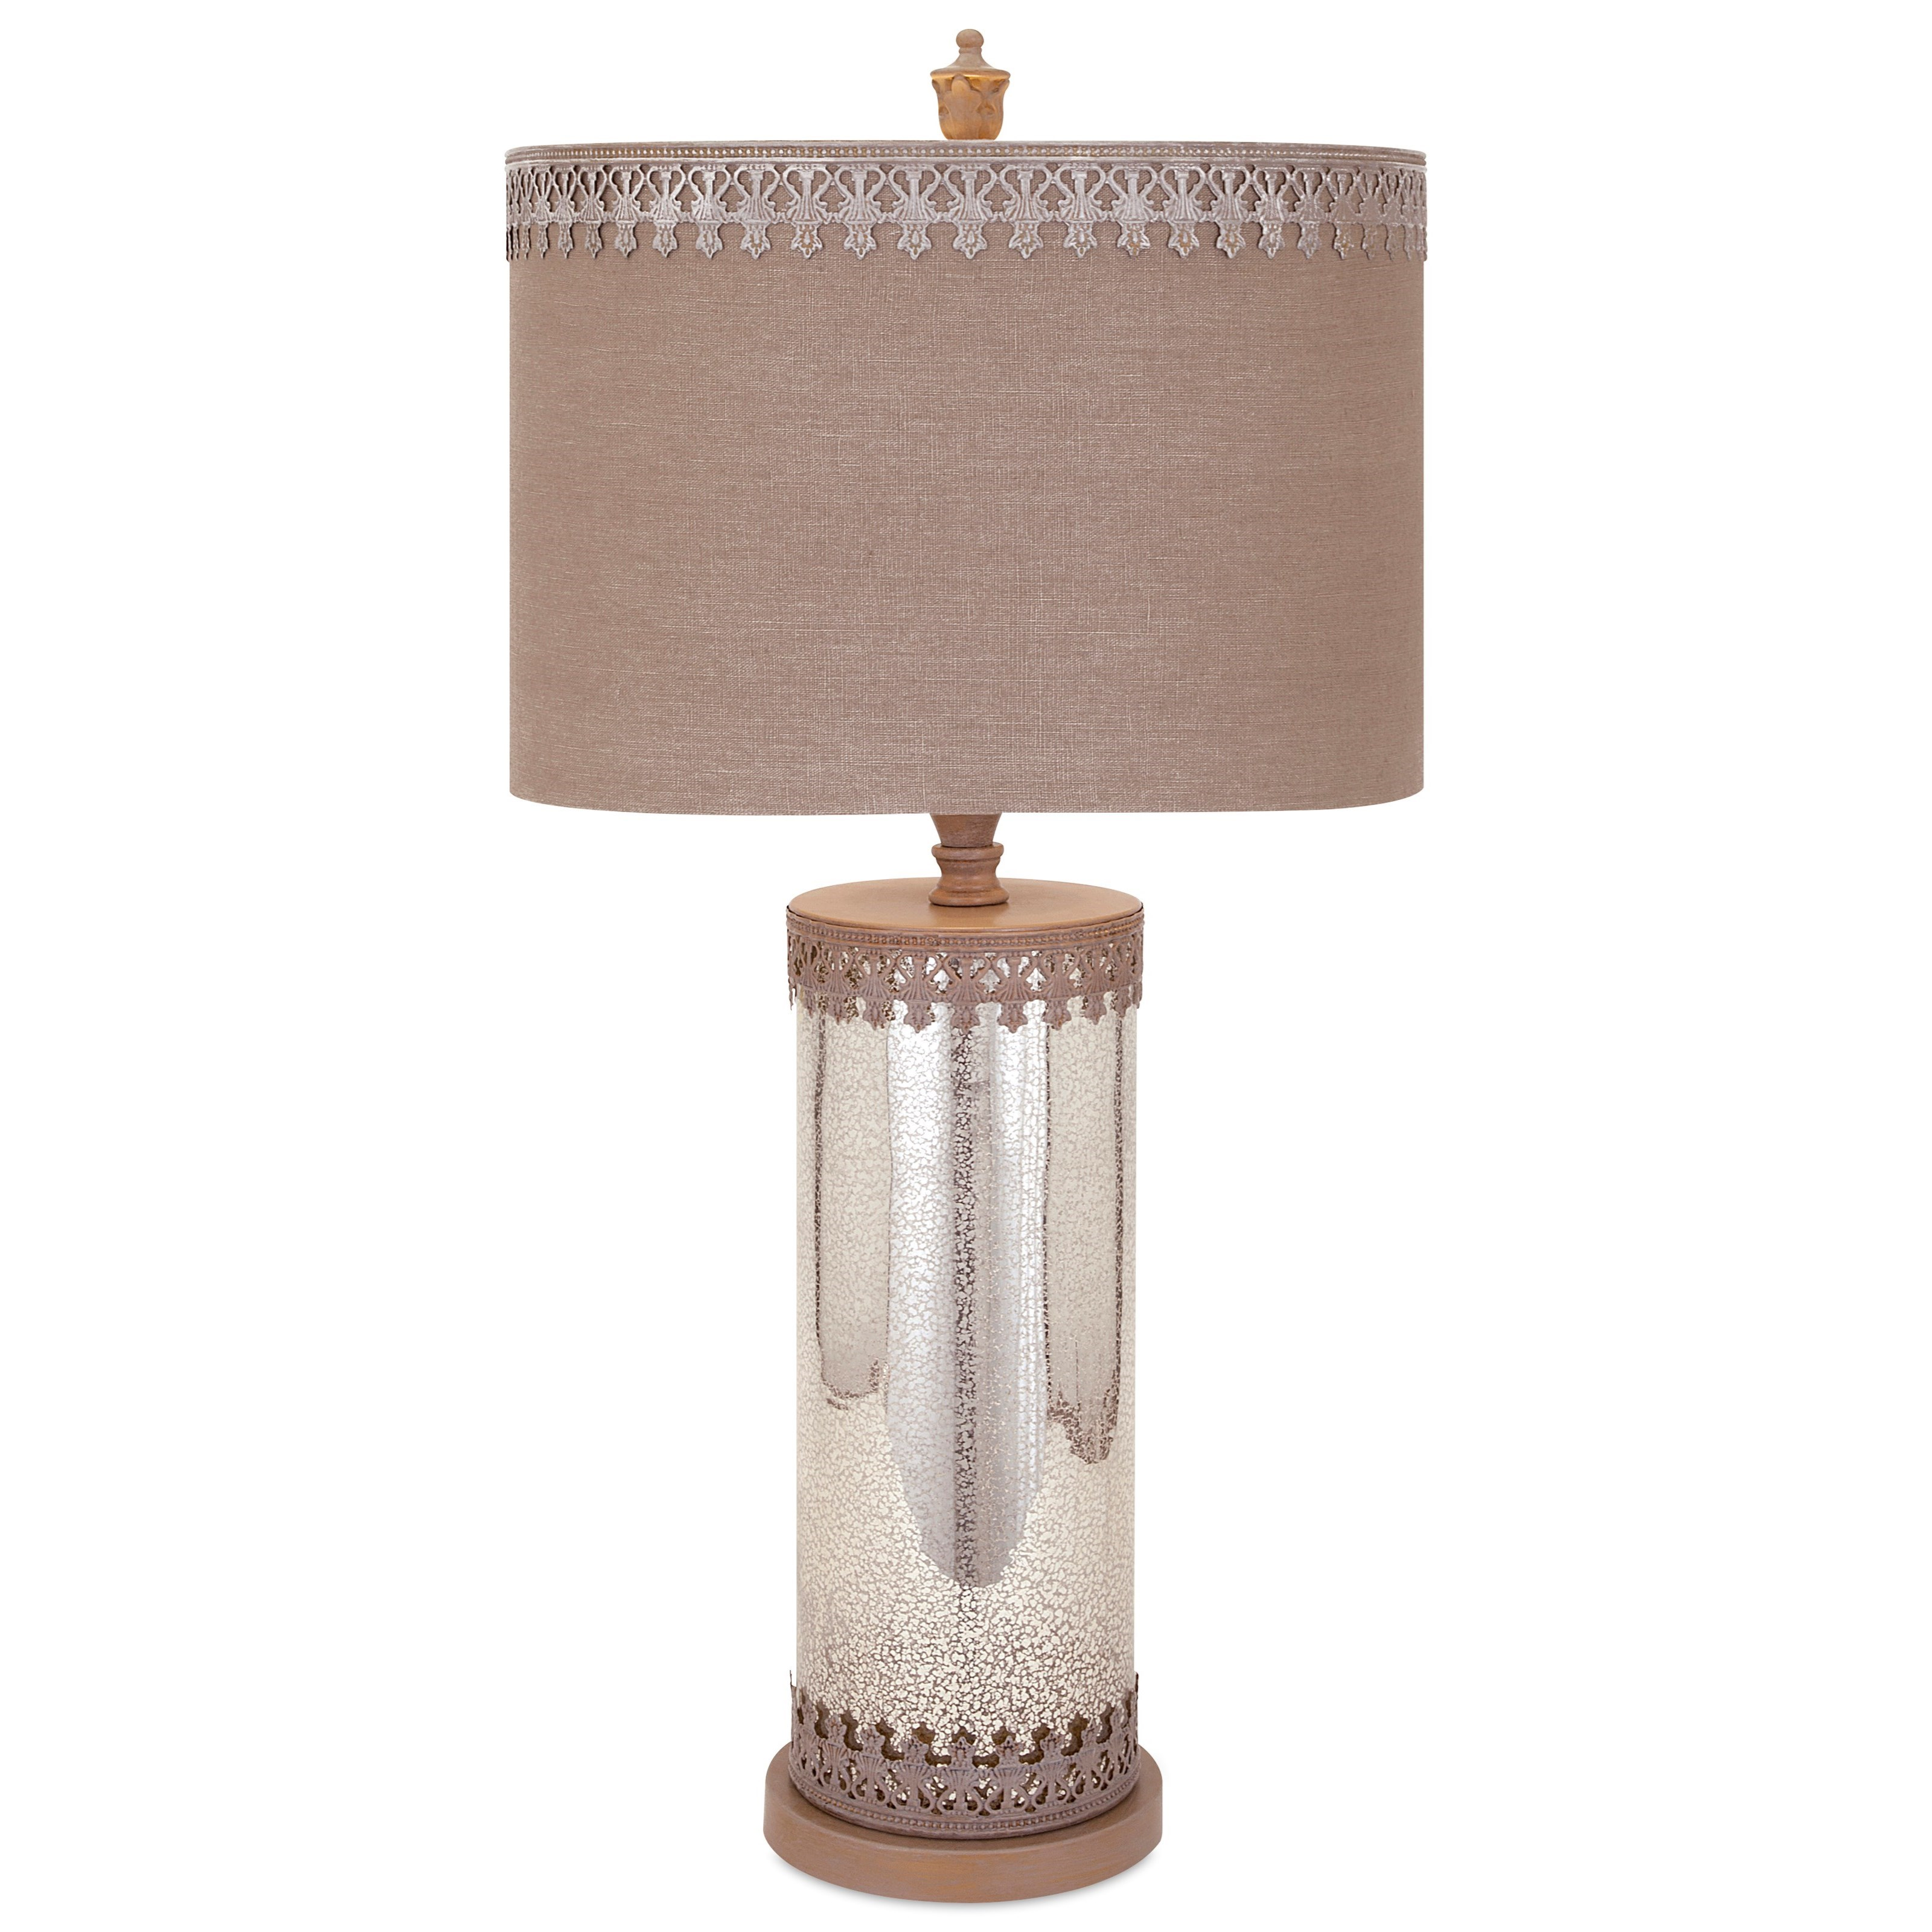 Becky Fletcher Amy Mercury Glass Lamp by IMAX Worldwide Home at Alison Craig Home Furnishings